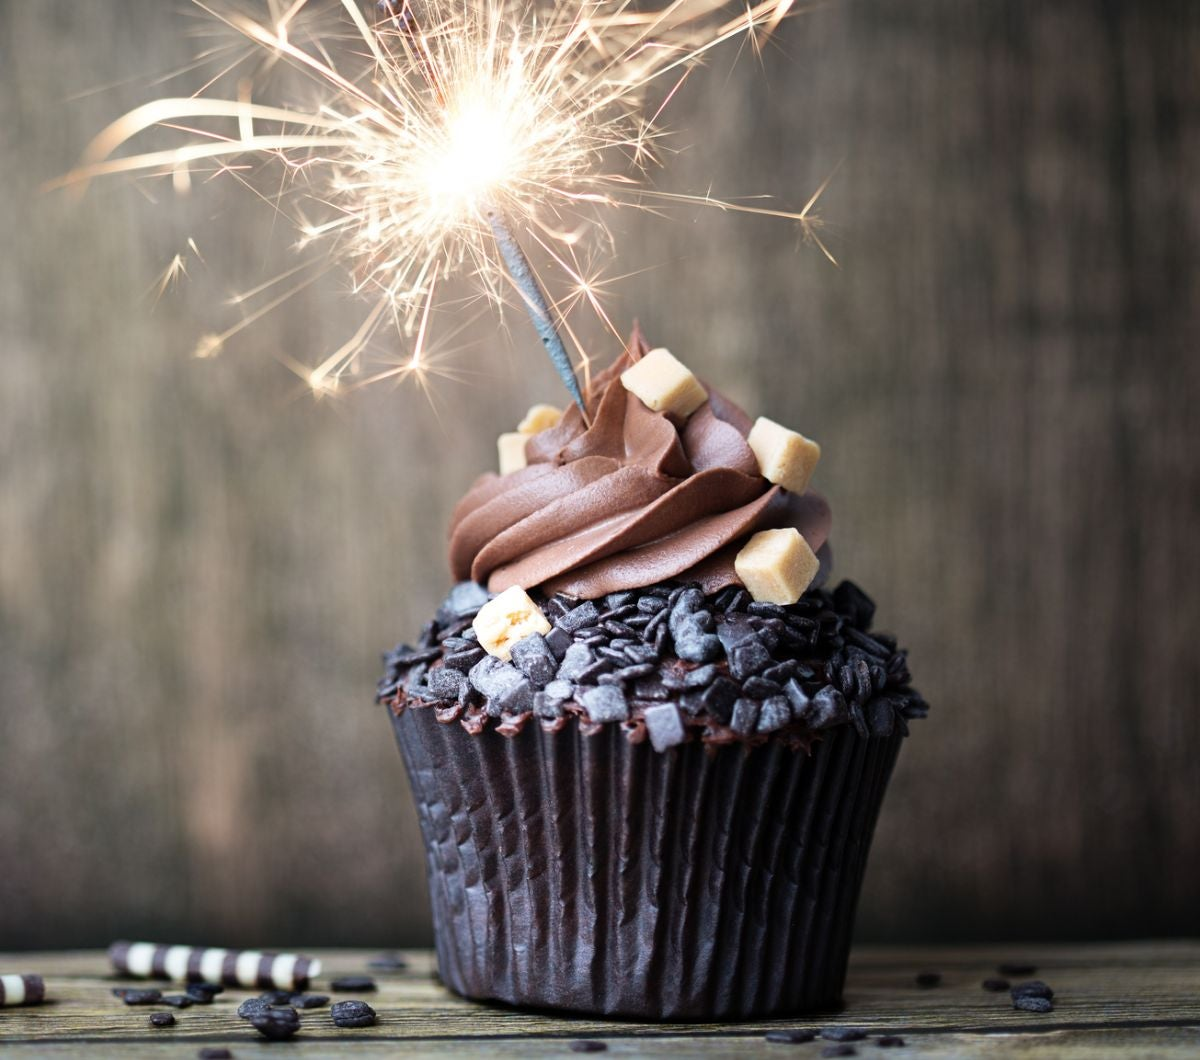 A chocolate cupcake with chocolate curls and a sparkler on top